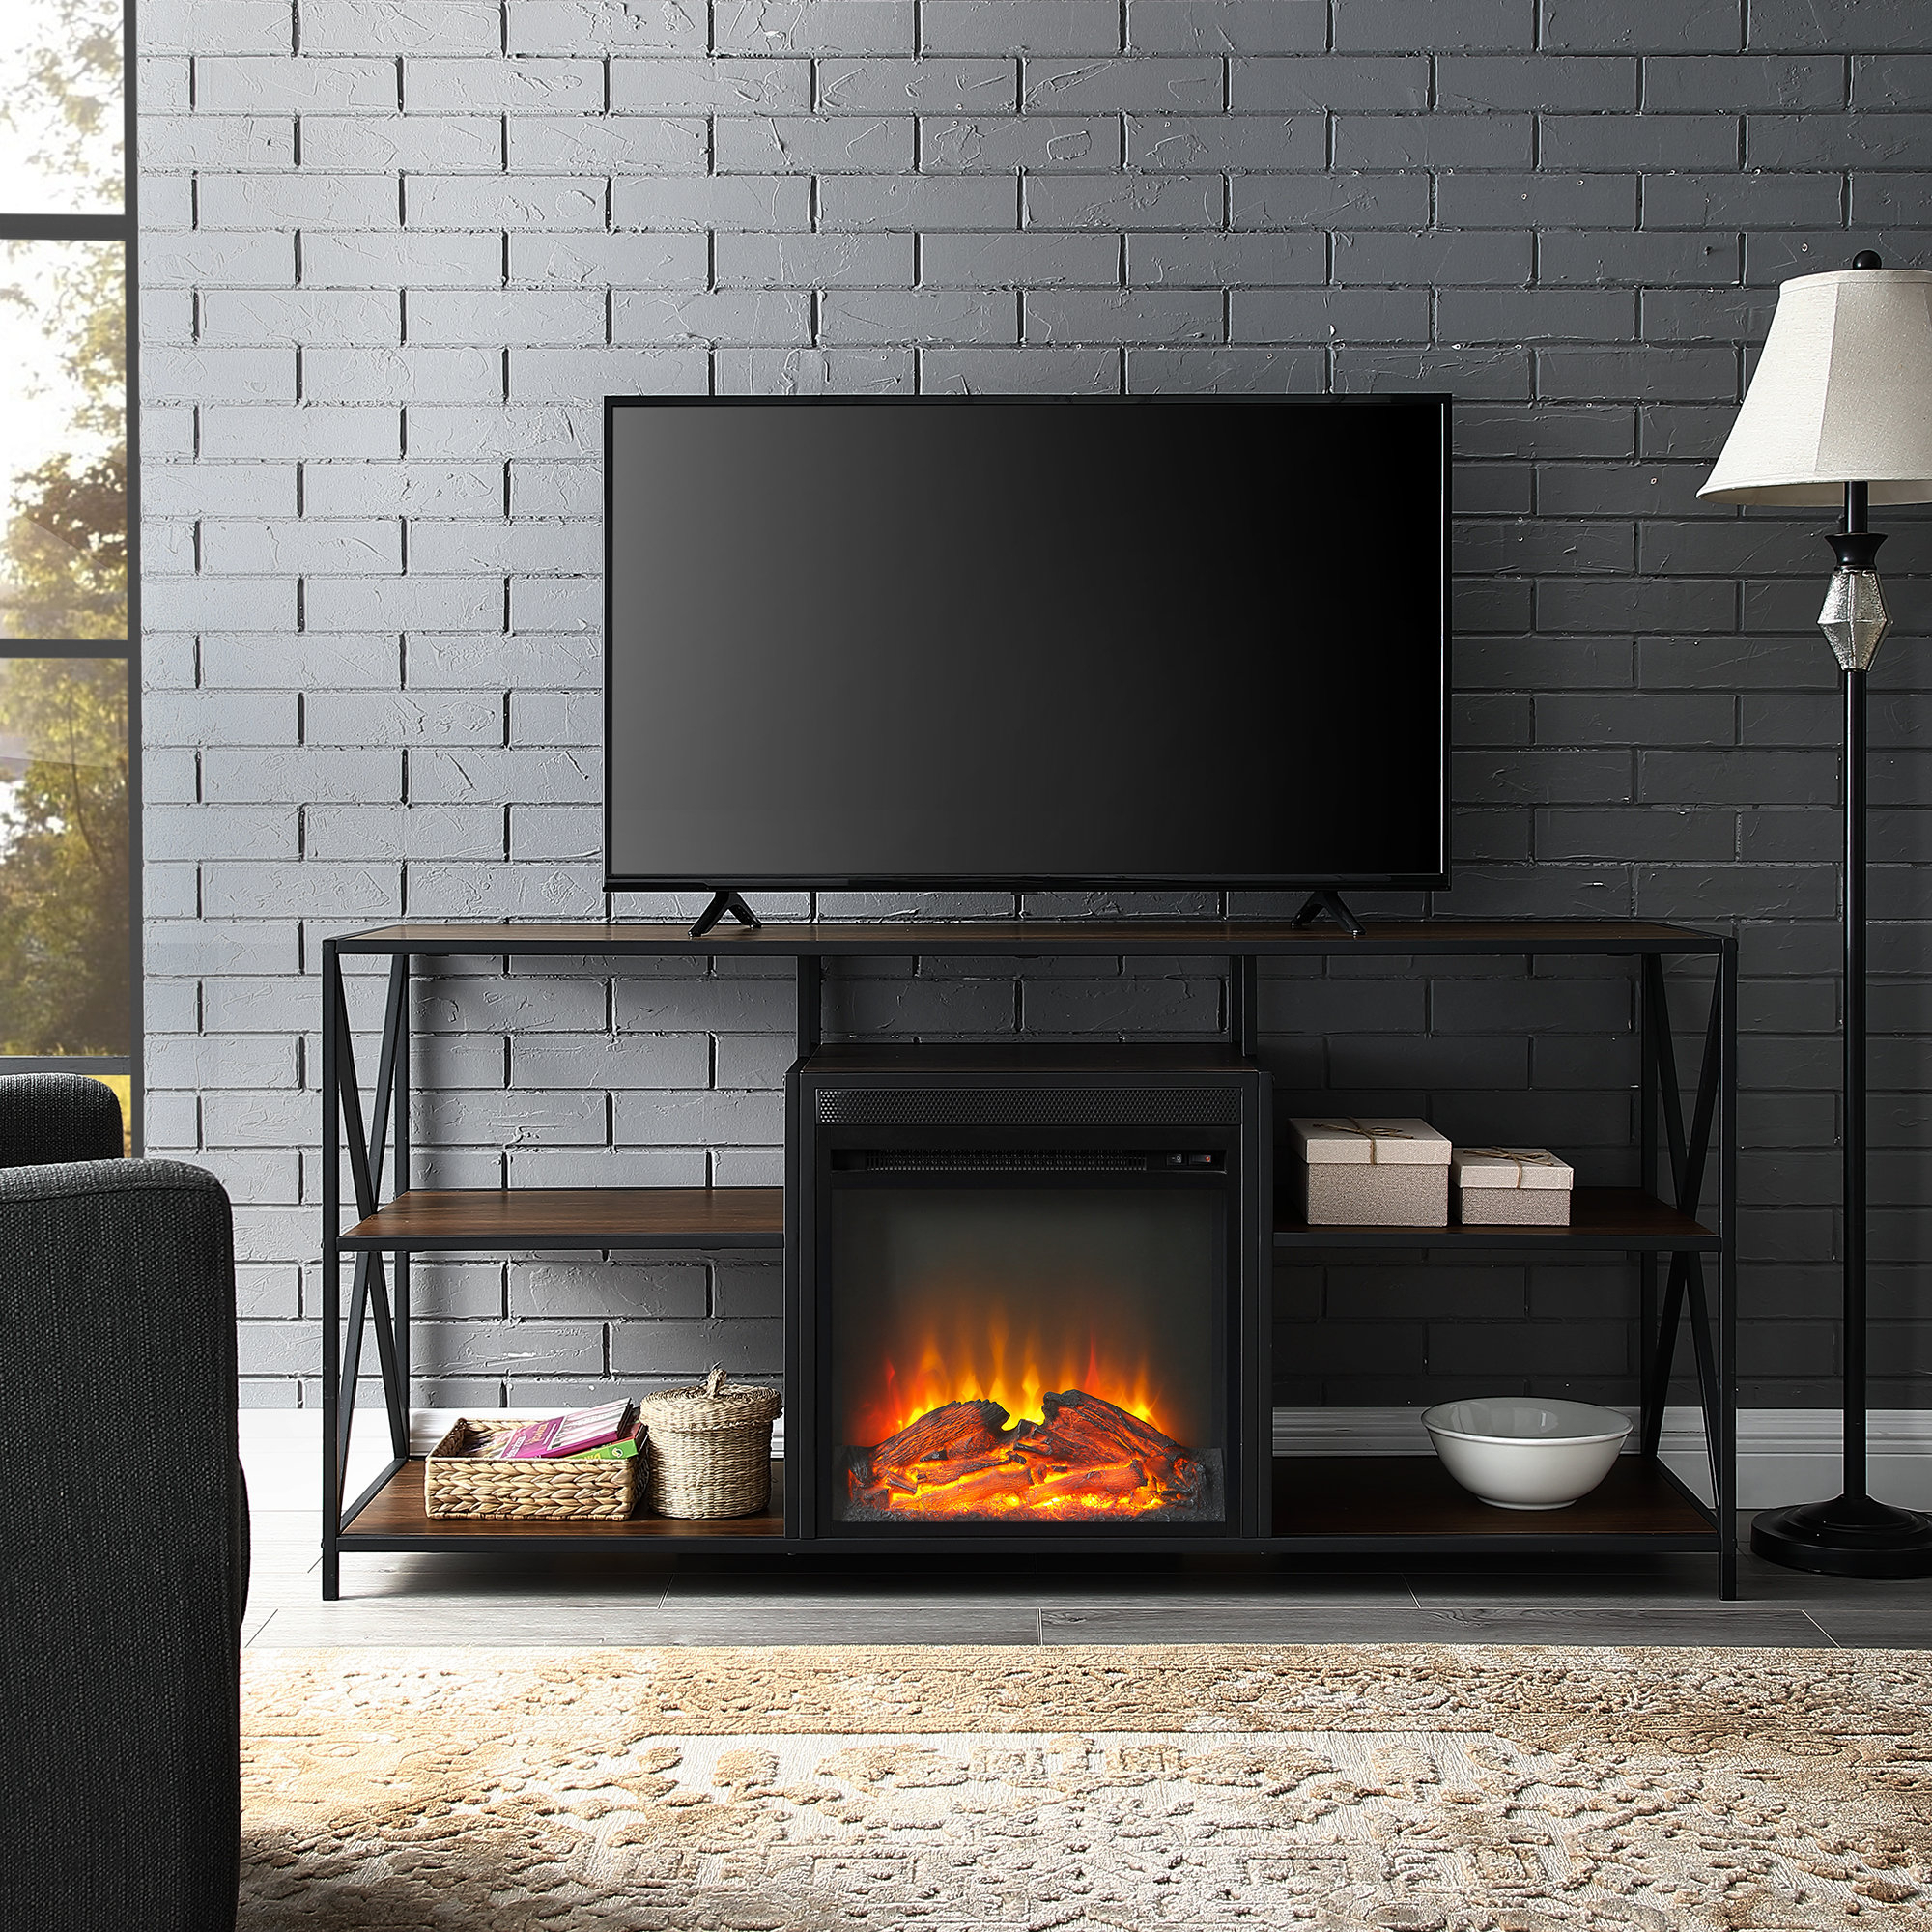 60-69 Inch Tv Stand Fireplaces You'll Love | Wayfair within Caden 63 Inch Tv Stands (Image 5 of 30)